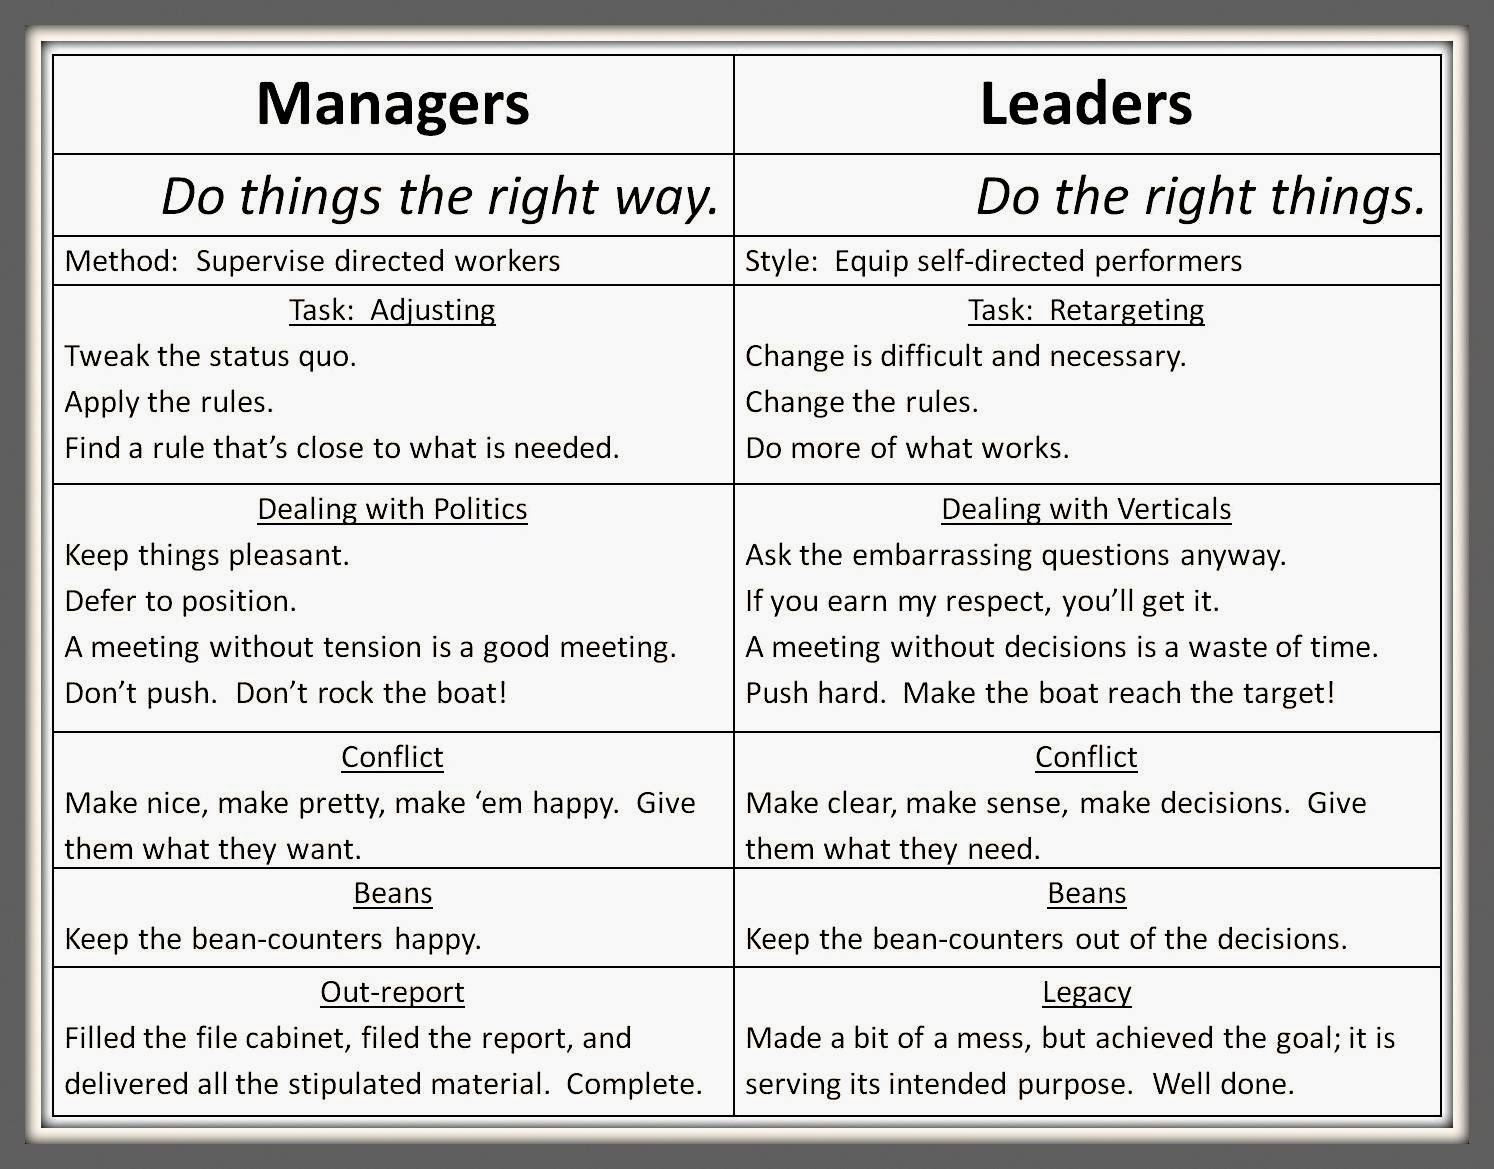 leadership management and leader Interested in knowing the difference between leadership and management difference between clearly elucidates the difference between leadership and management.